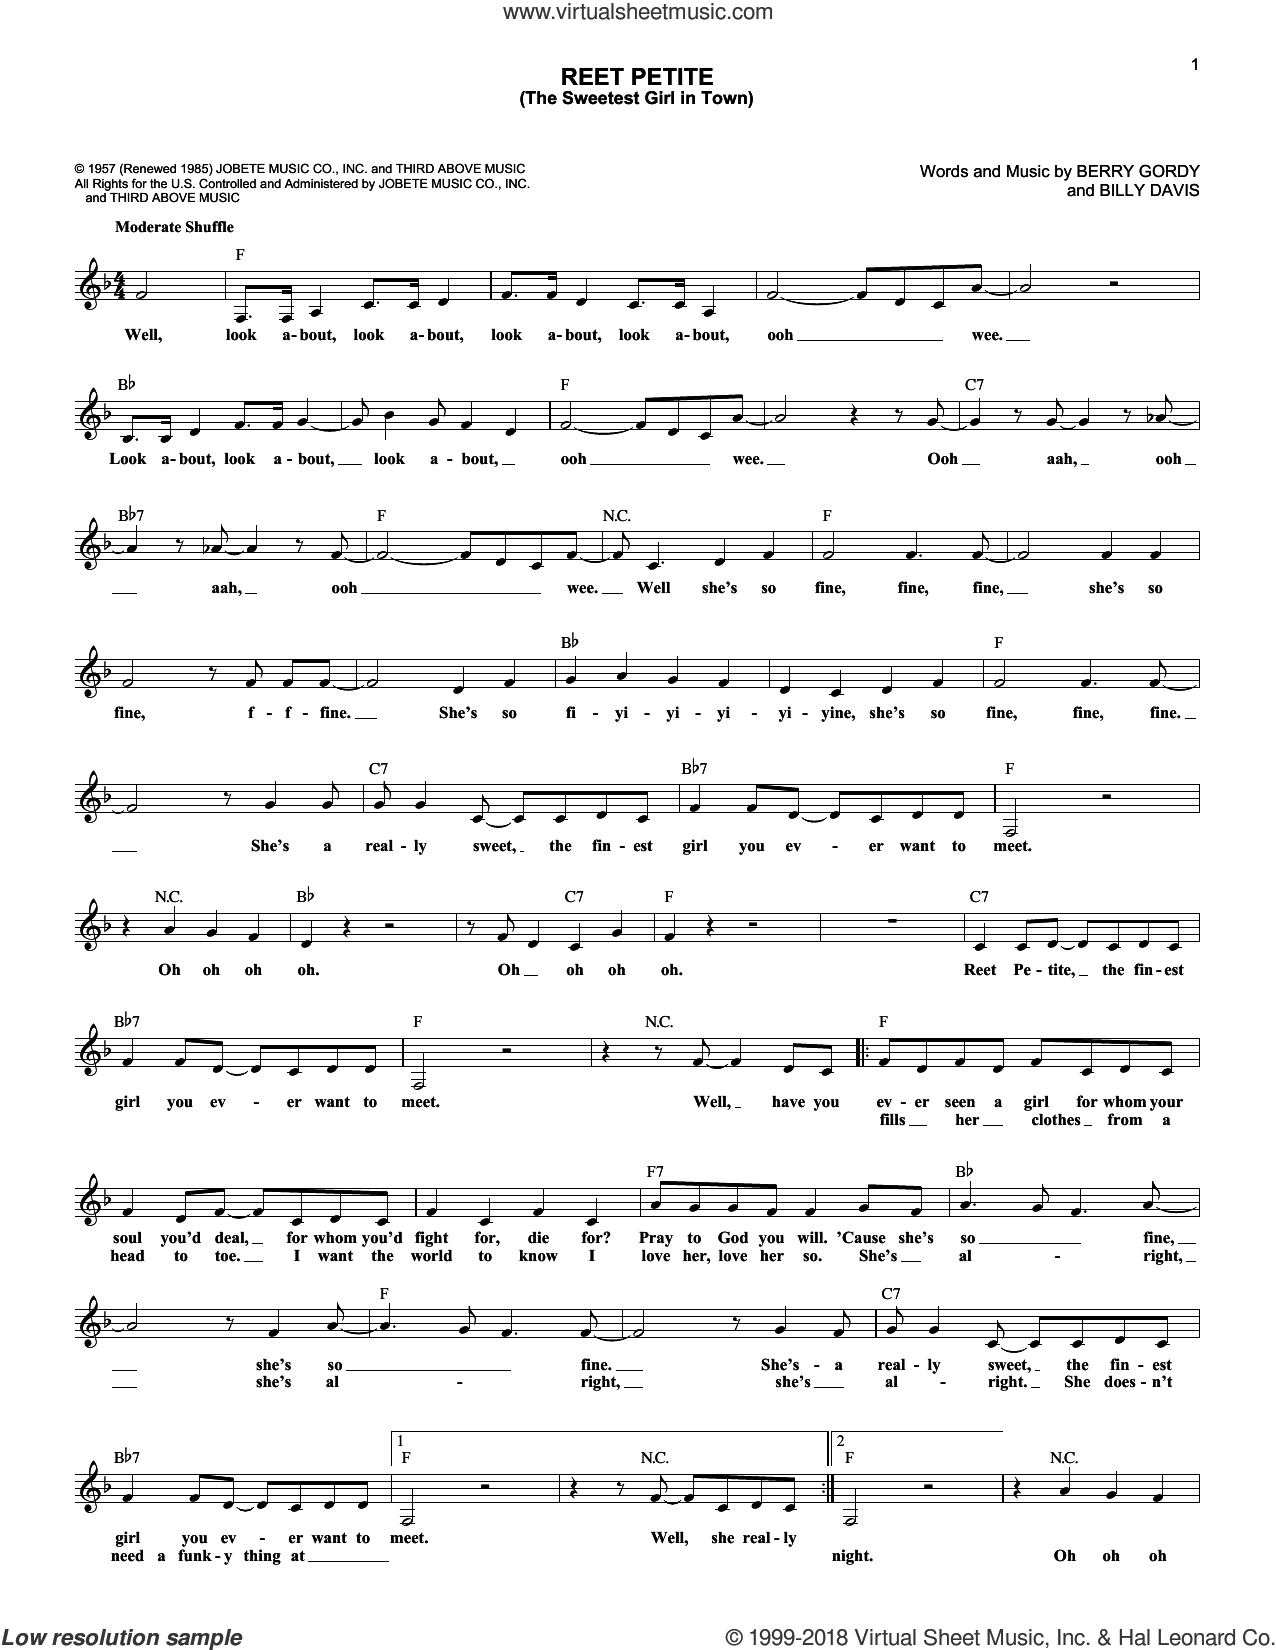 Reet Petite (The Sweetest Girl In Town) sheet music for voice and other instruments (fake book) by Jackie Wilson, Berry Gordy and Billy Davis, intermediate skill level